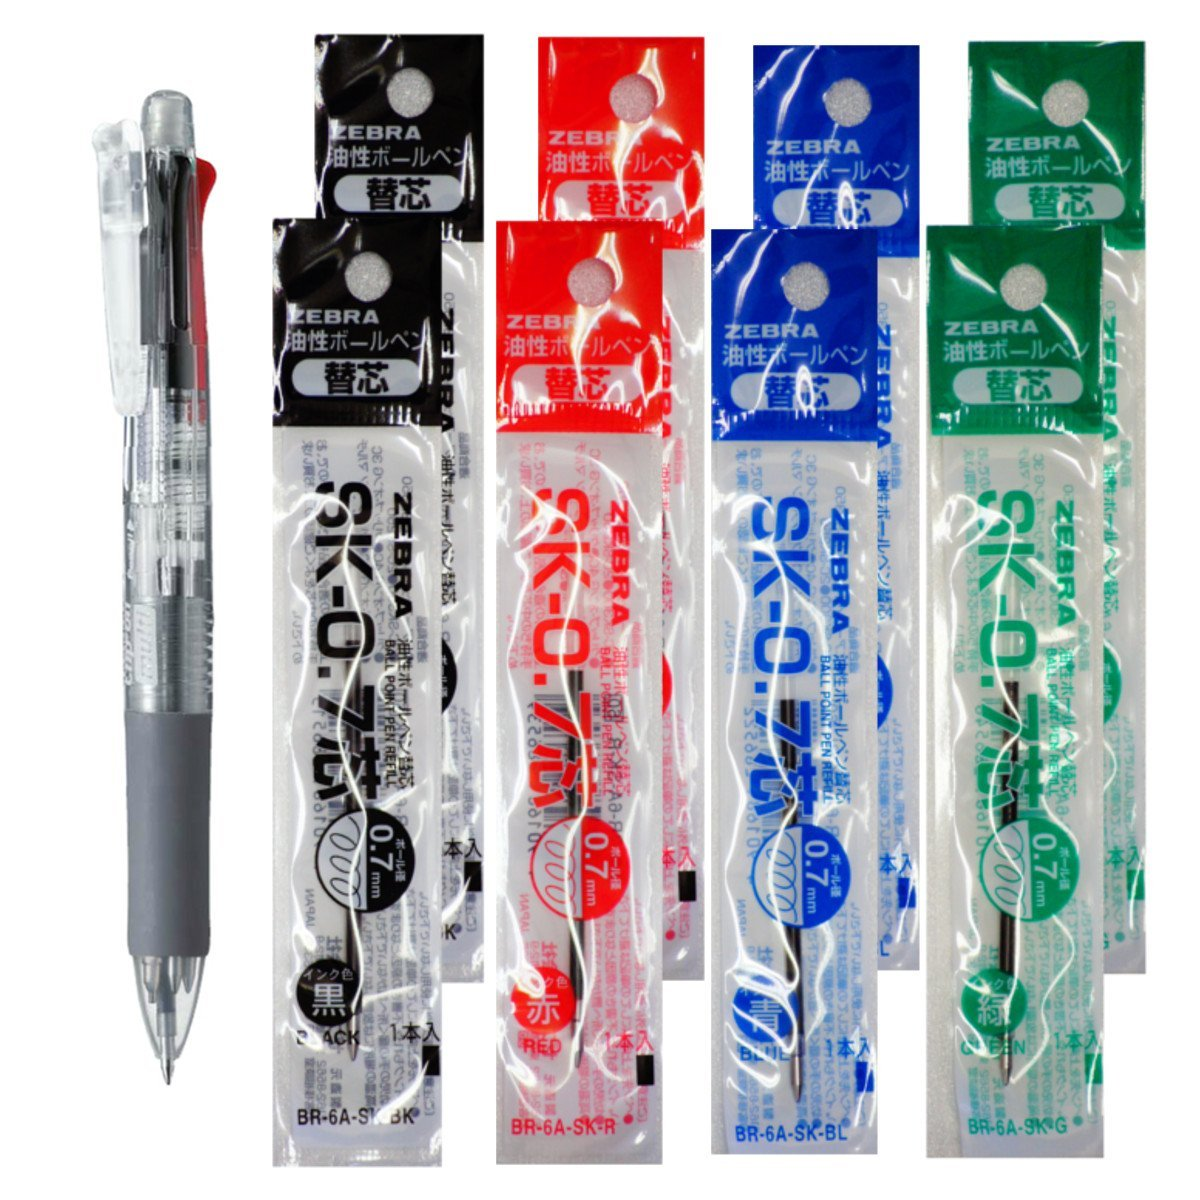 Zebra B4SA1 Transparent Pen +SK-0.7 Black, Blue, Red, Green 0.7mm Refills (8pcs) - Assorted [B4SA1_8-SK-0.7]